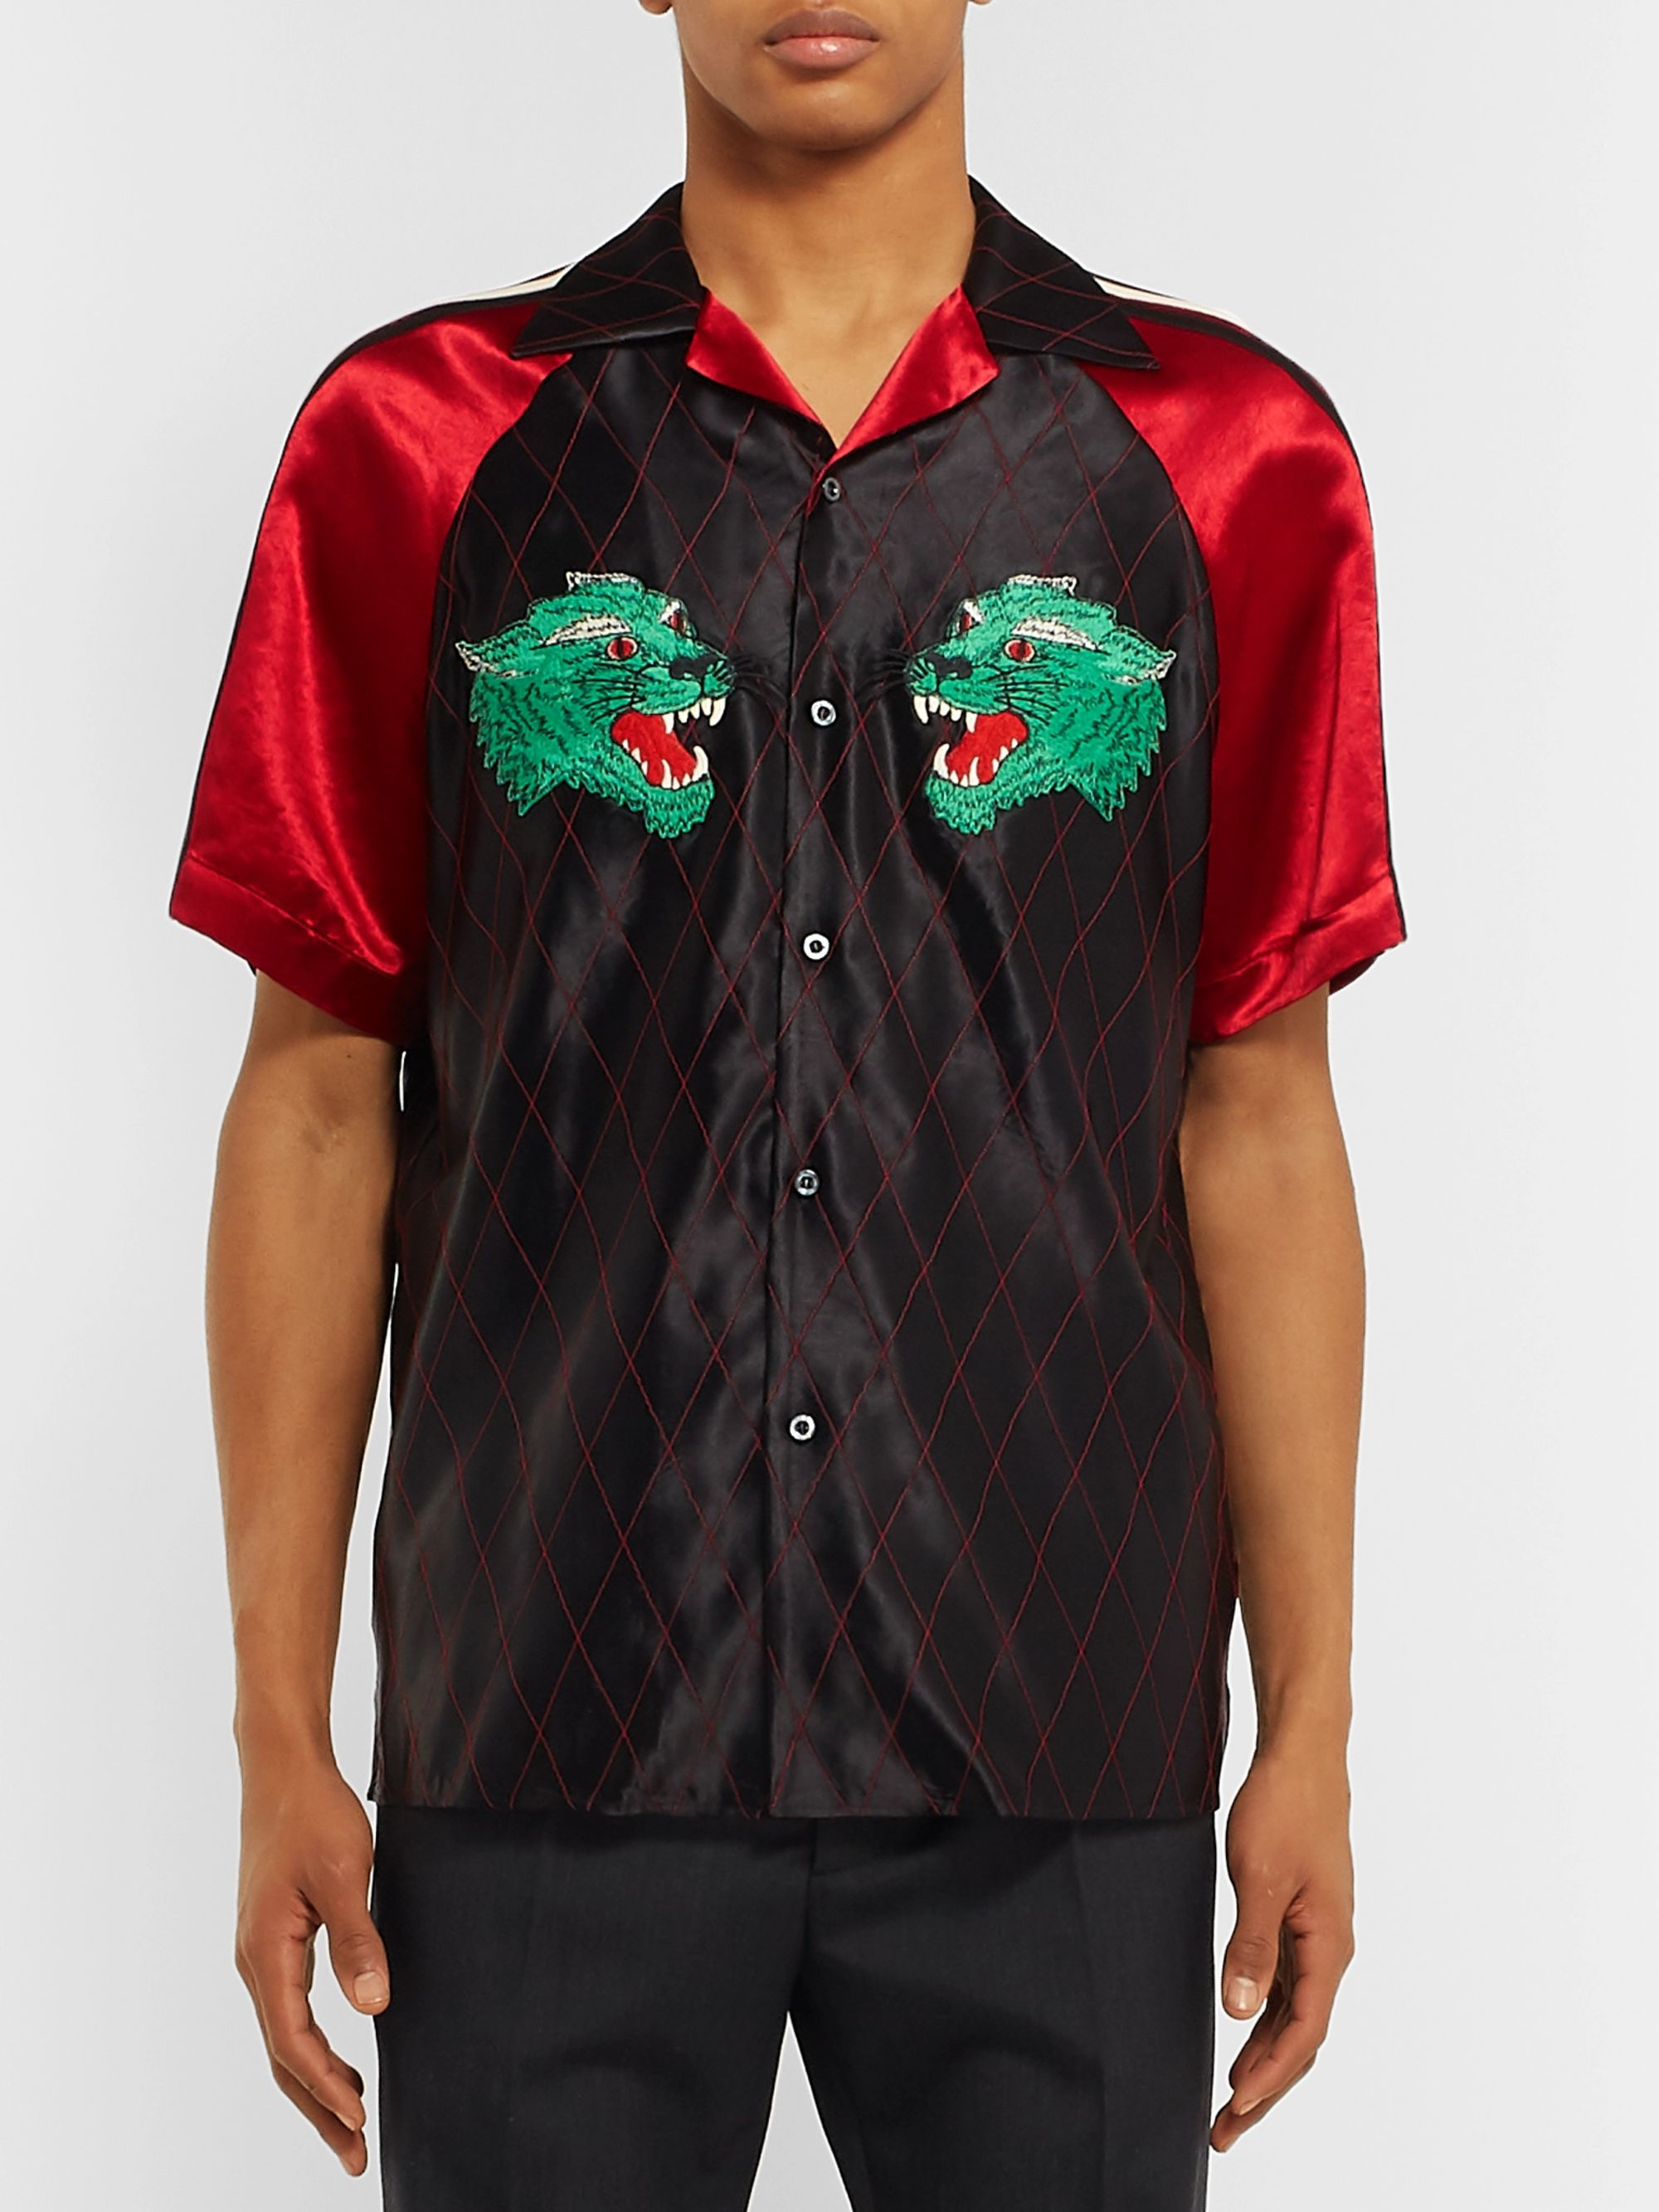 Gucci Camp-Collar Webbing-Trimmed Appliquéd Satin Shirt